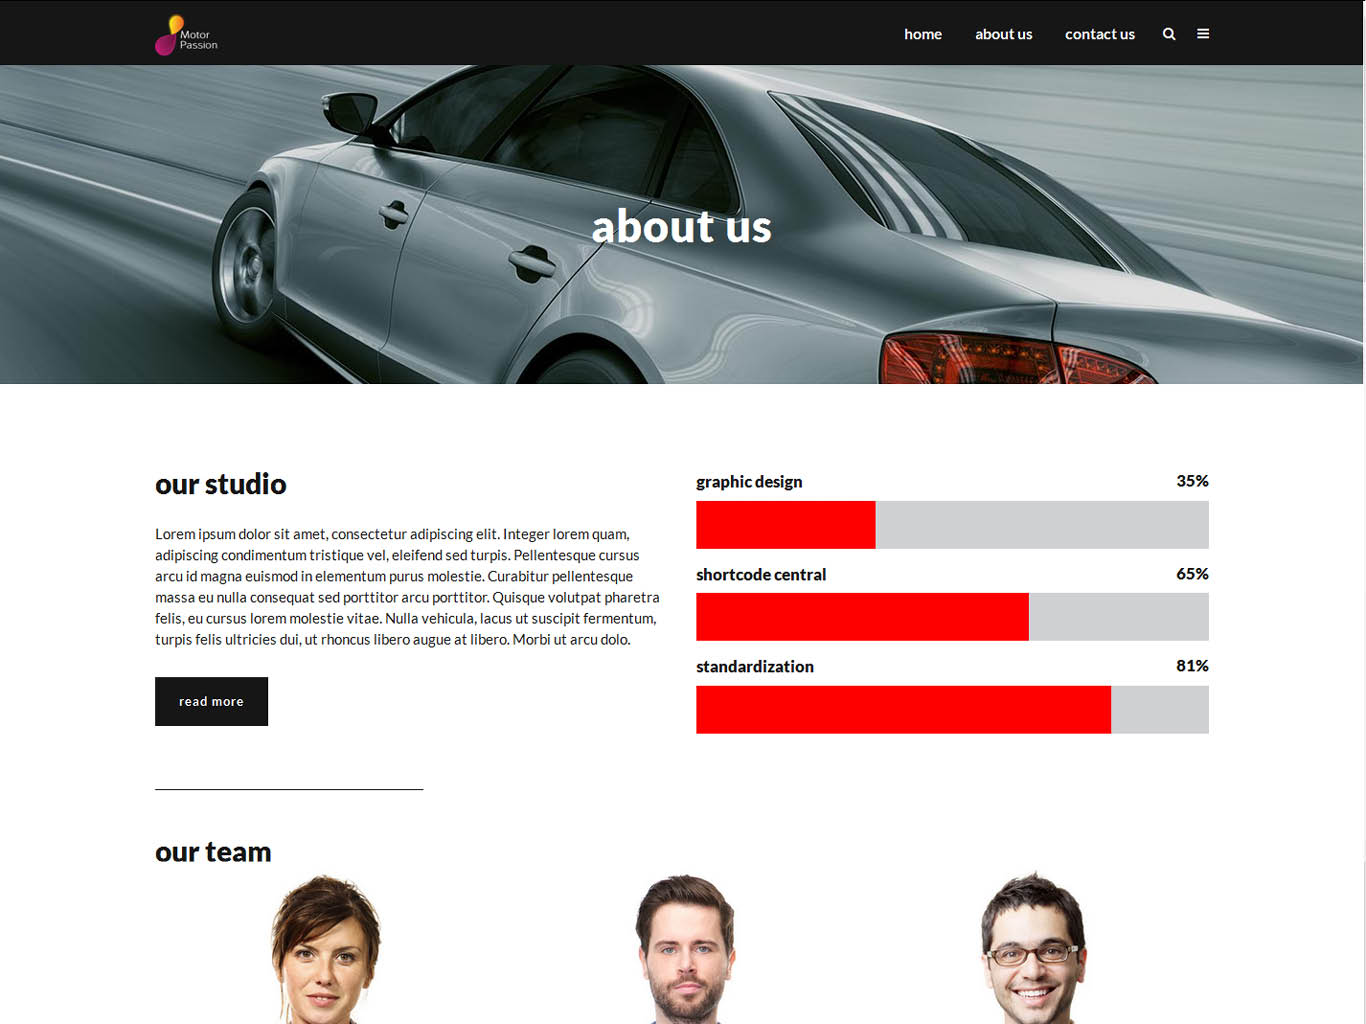 motor web design agency london-about